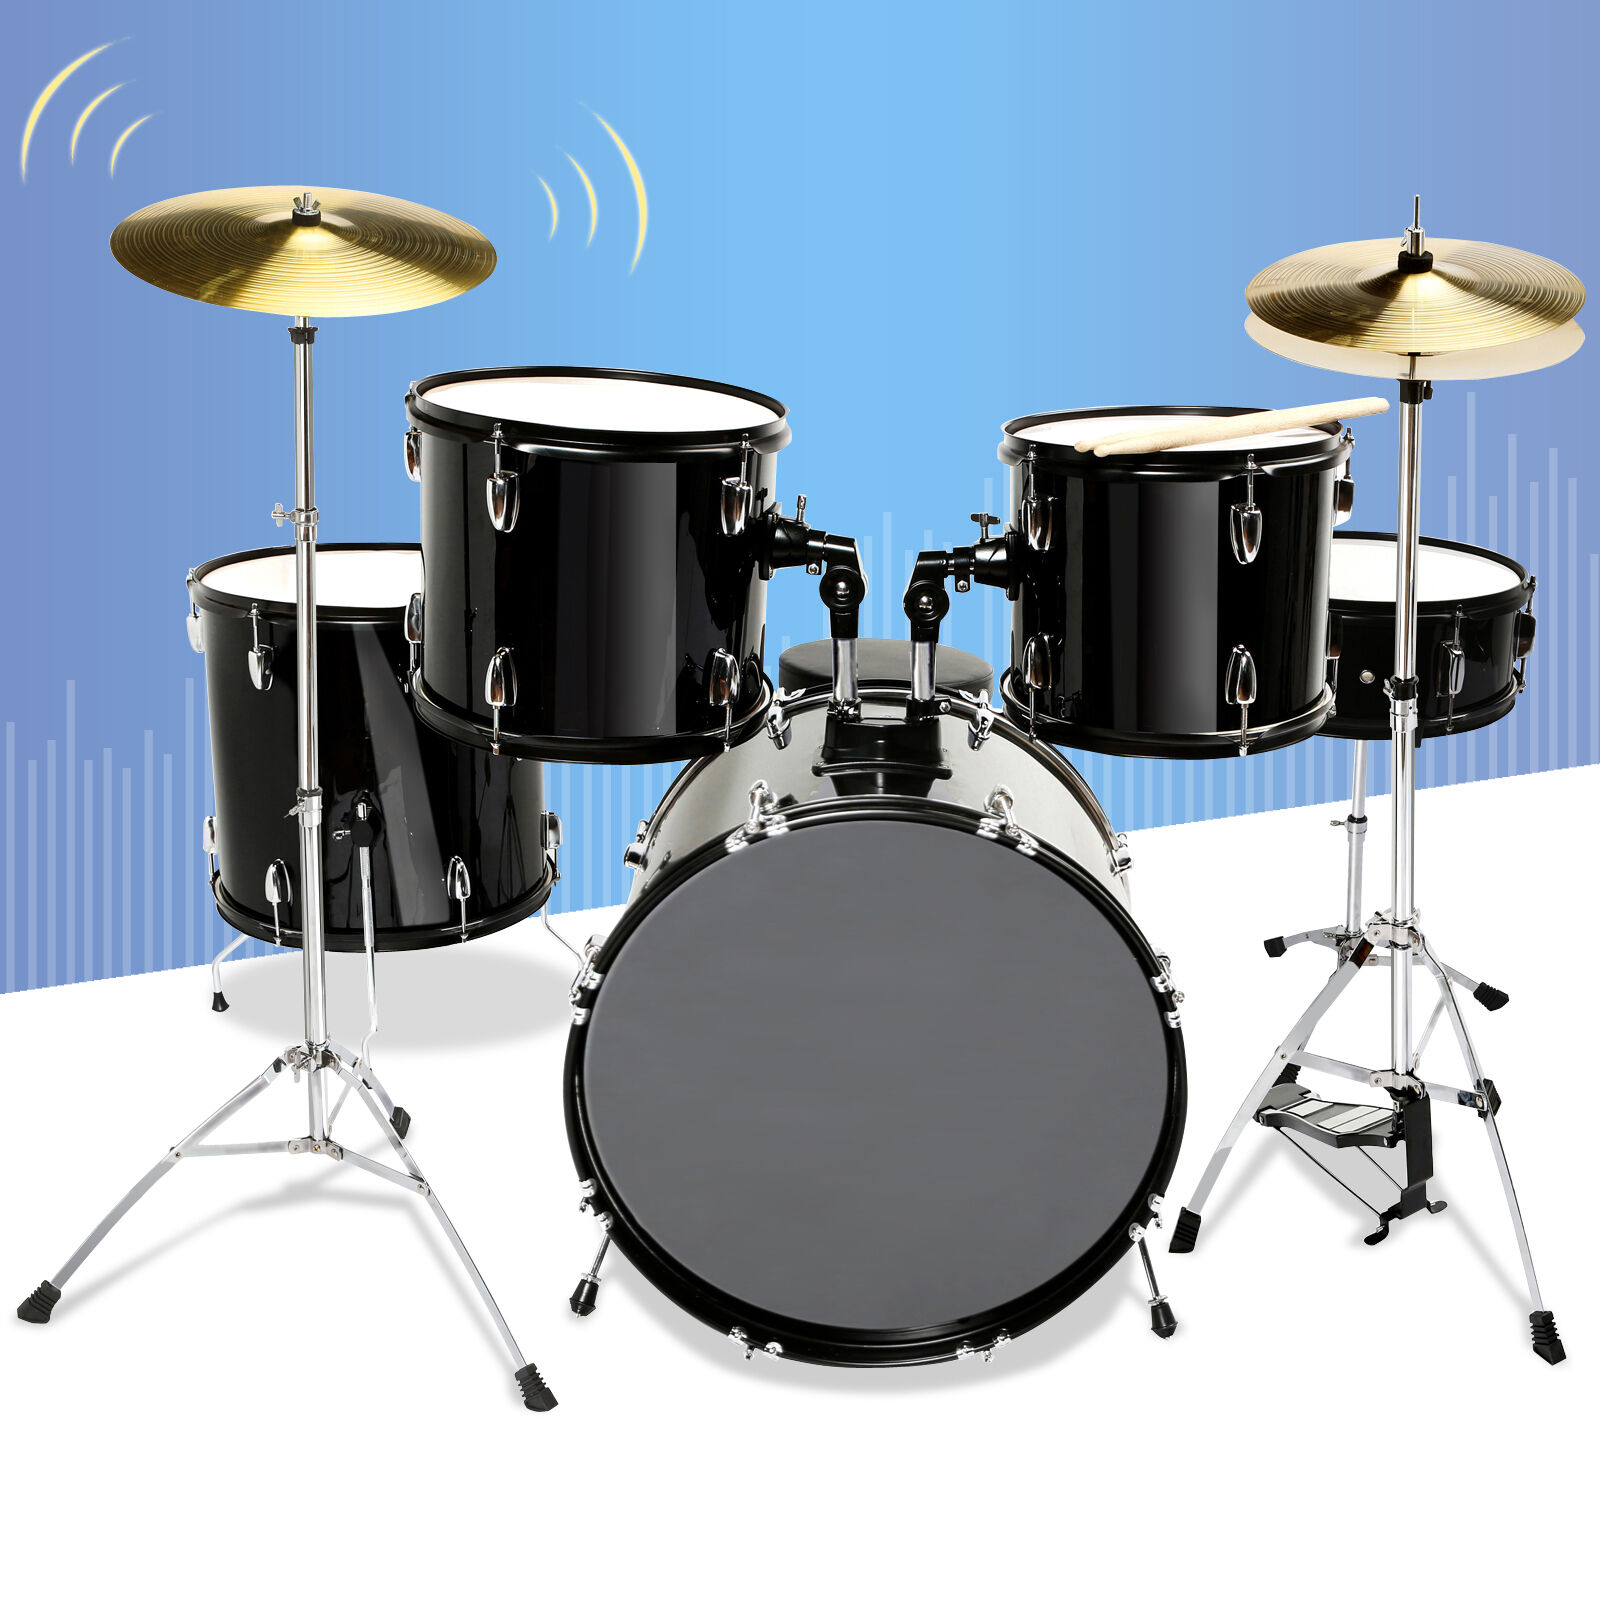 5 Piece Complete Adult Drum Set Cymbals Full Size Kit With Stool ...